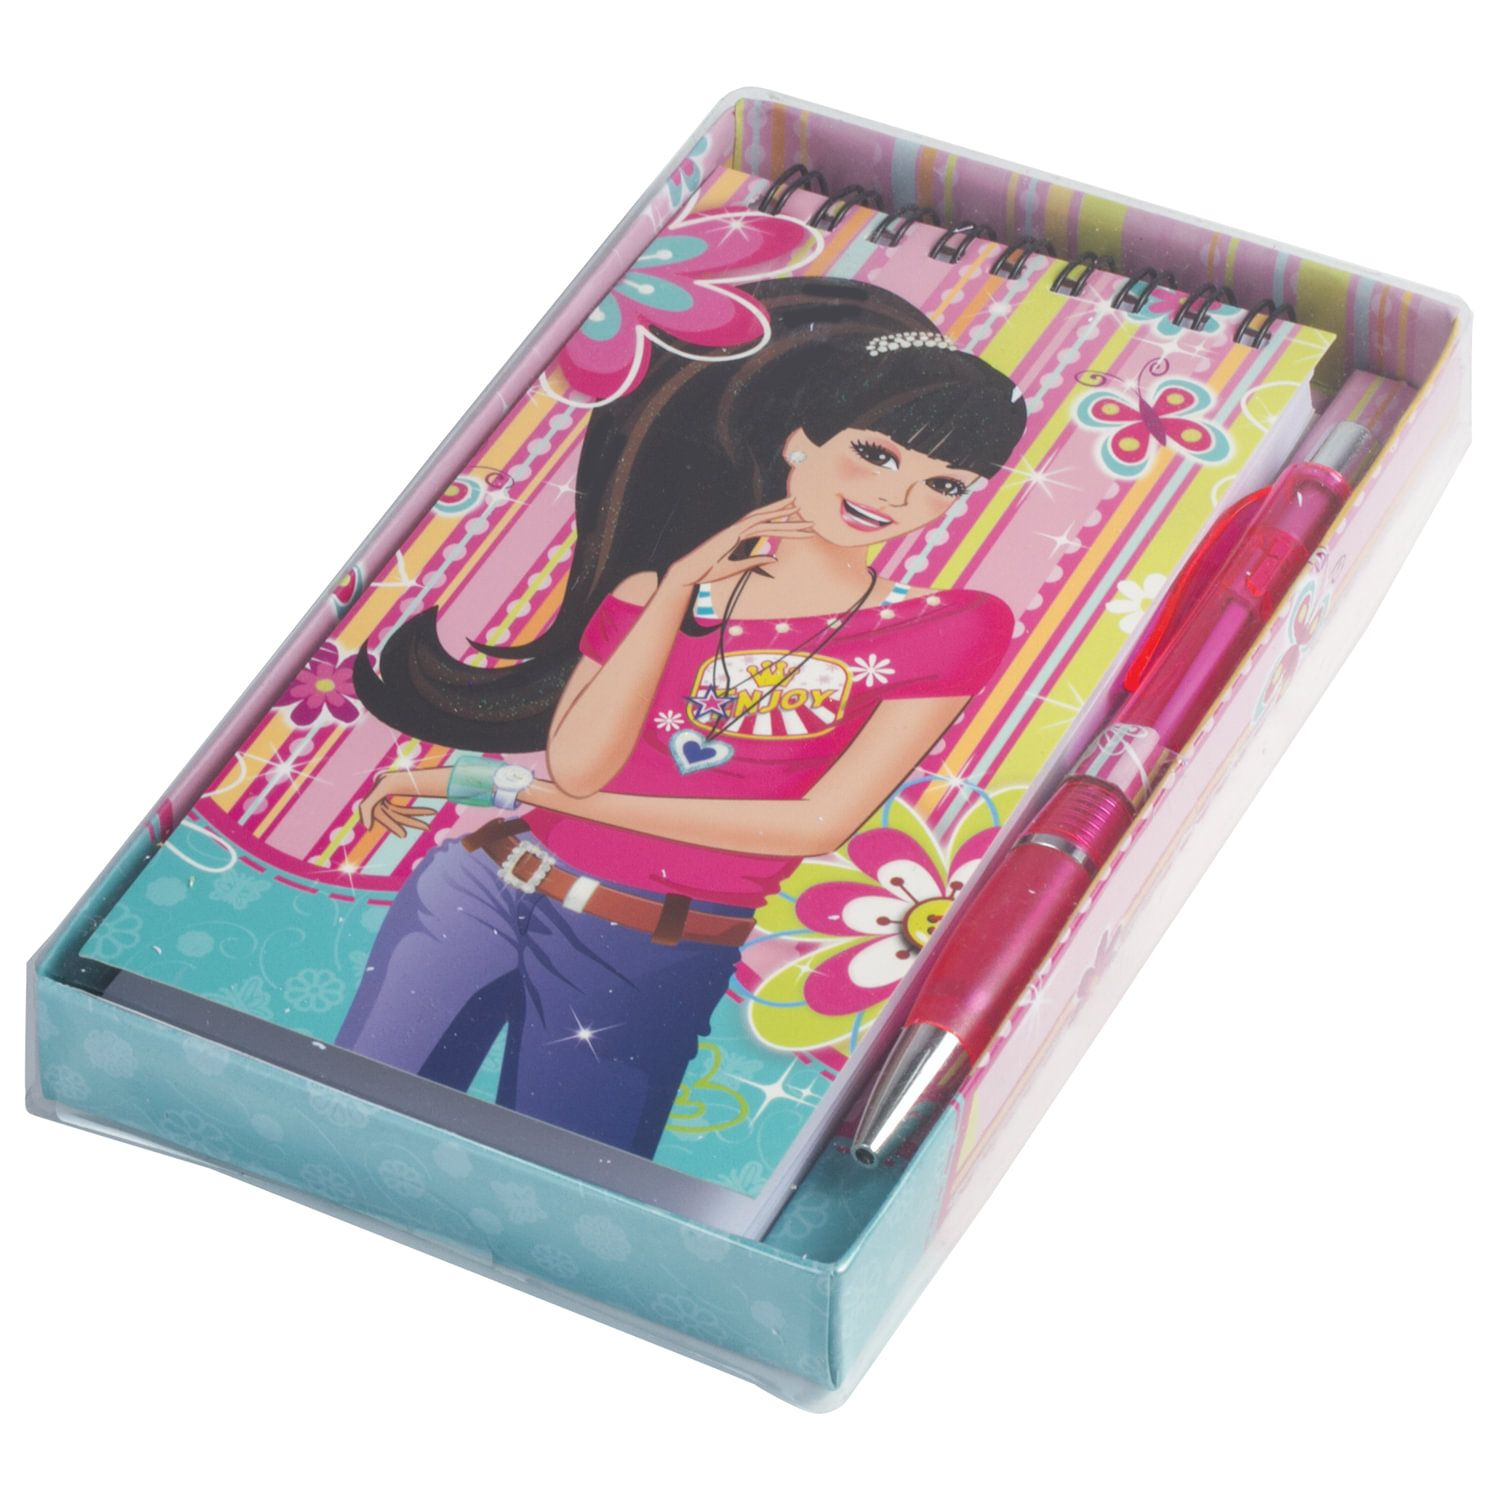 """BRAUBERG / Non-ruled notebook """"Girl"""" SMALL FORMAT 80 sheets A6, 85x165 mm, spiral, hardcover, pen, gift wrapping"""